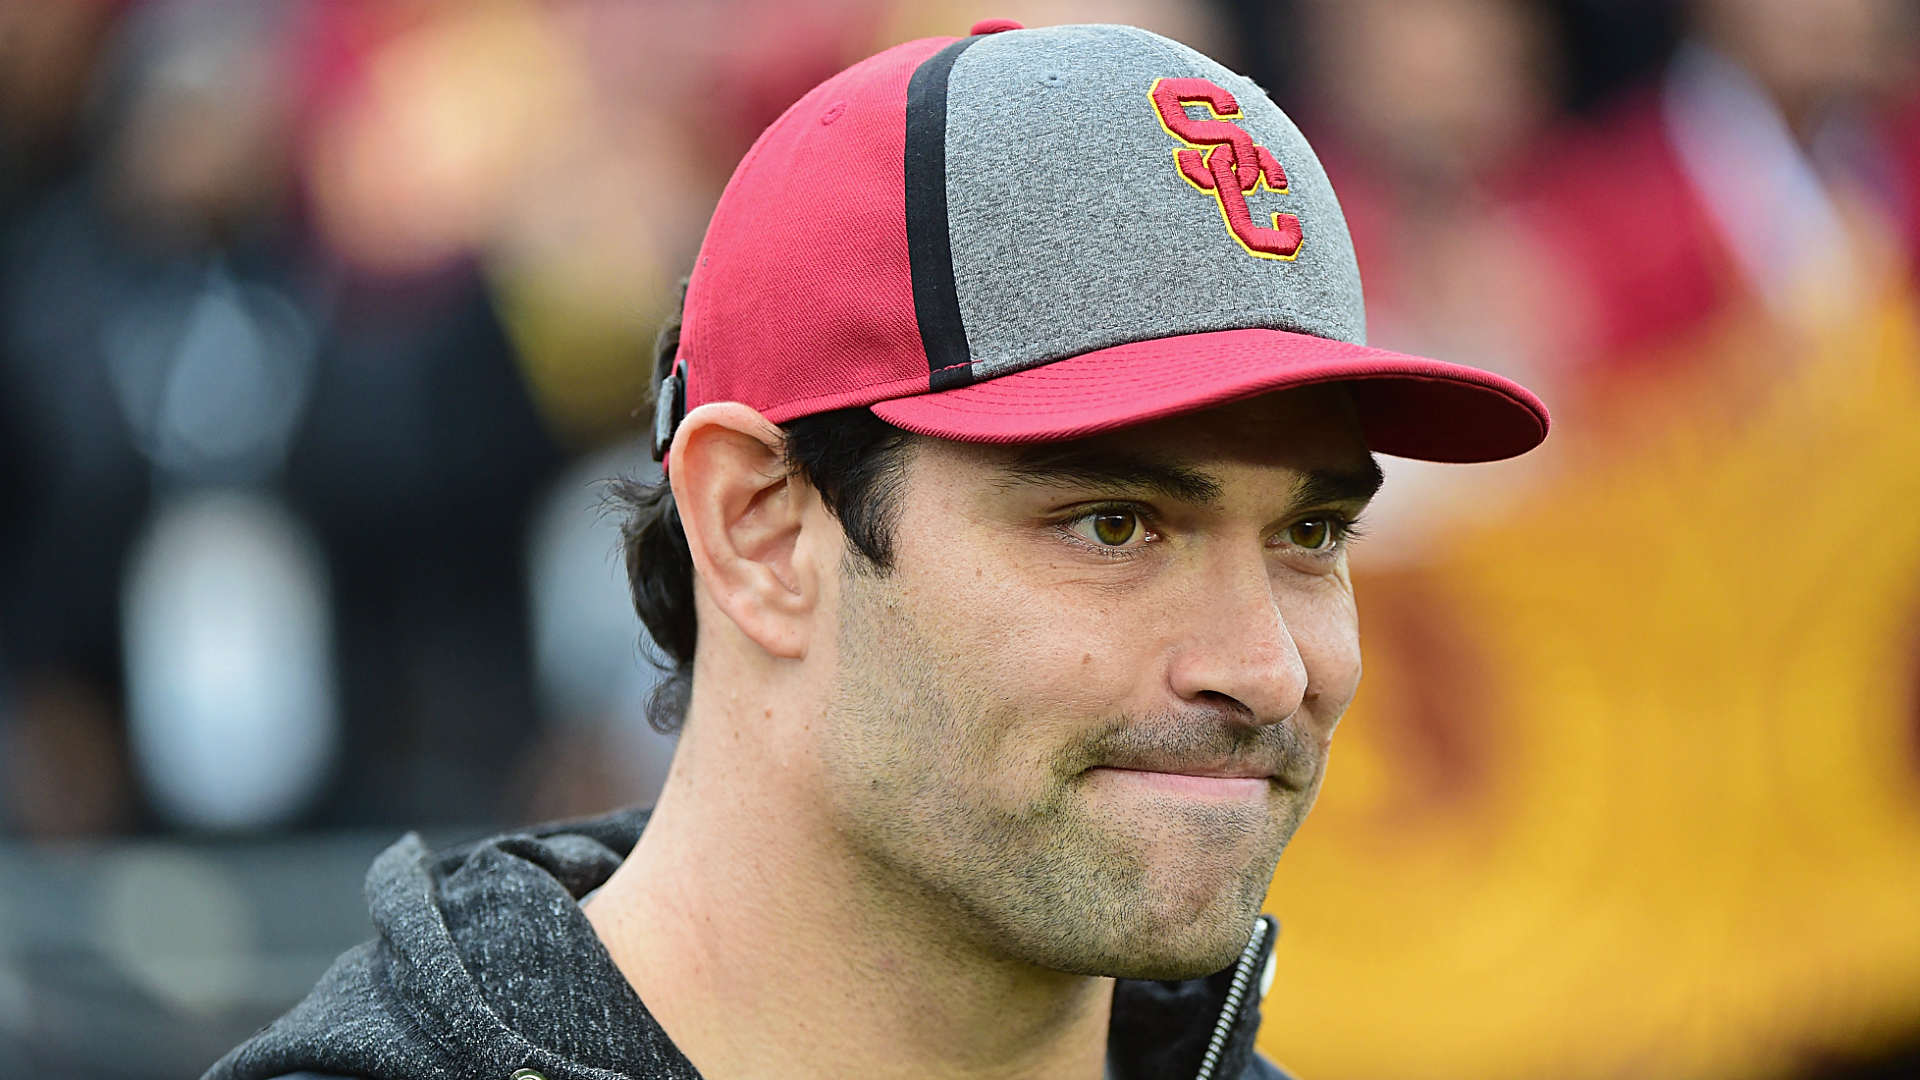 Mark-sanchez-032317-usnews-getty-ftr_hxq0tm17ba2x1mff1gikd622y